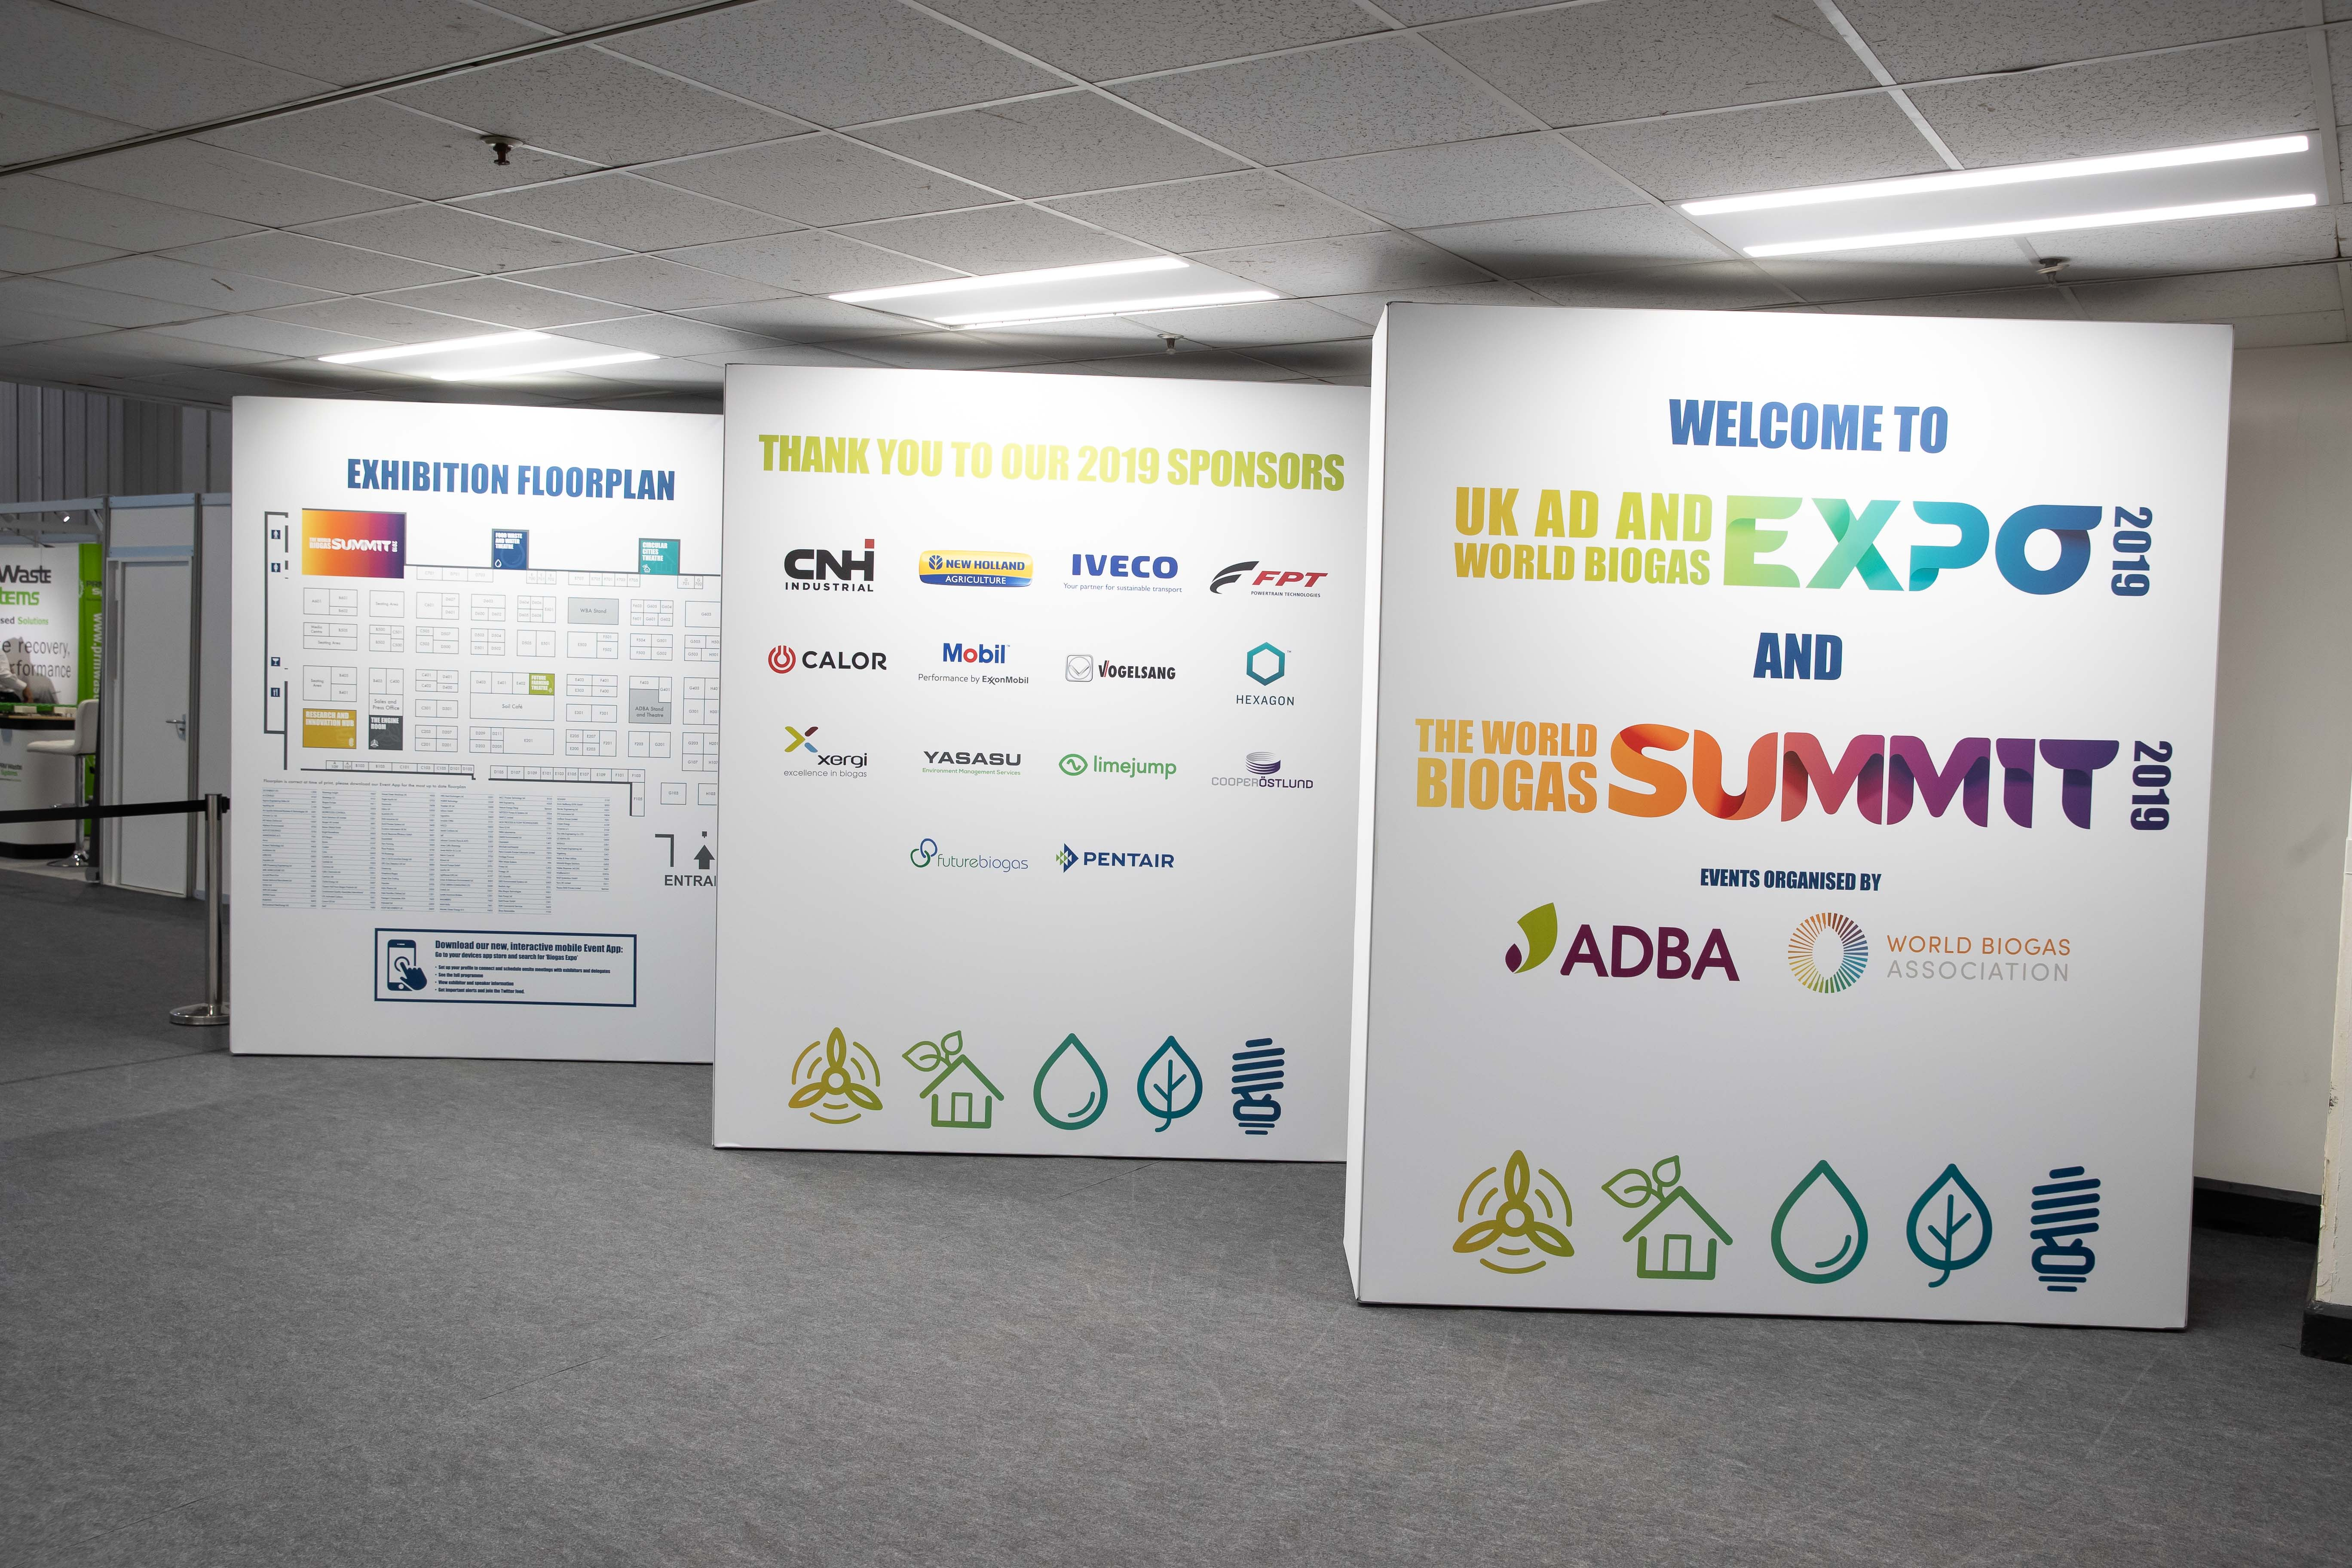 UK AD and World Biogas Expo 2019 | Conference